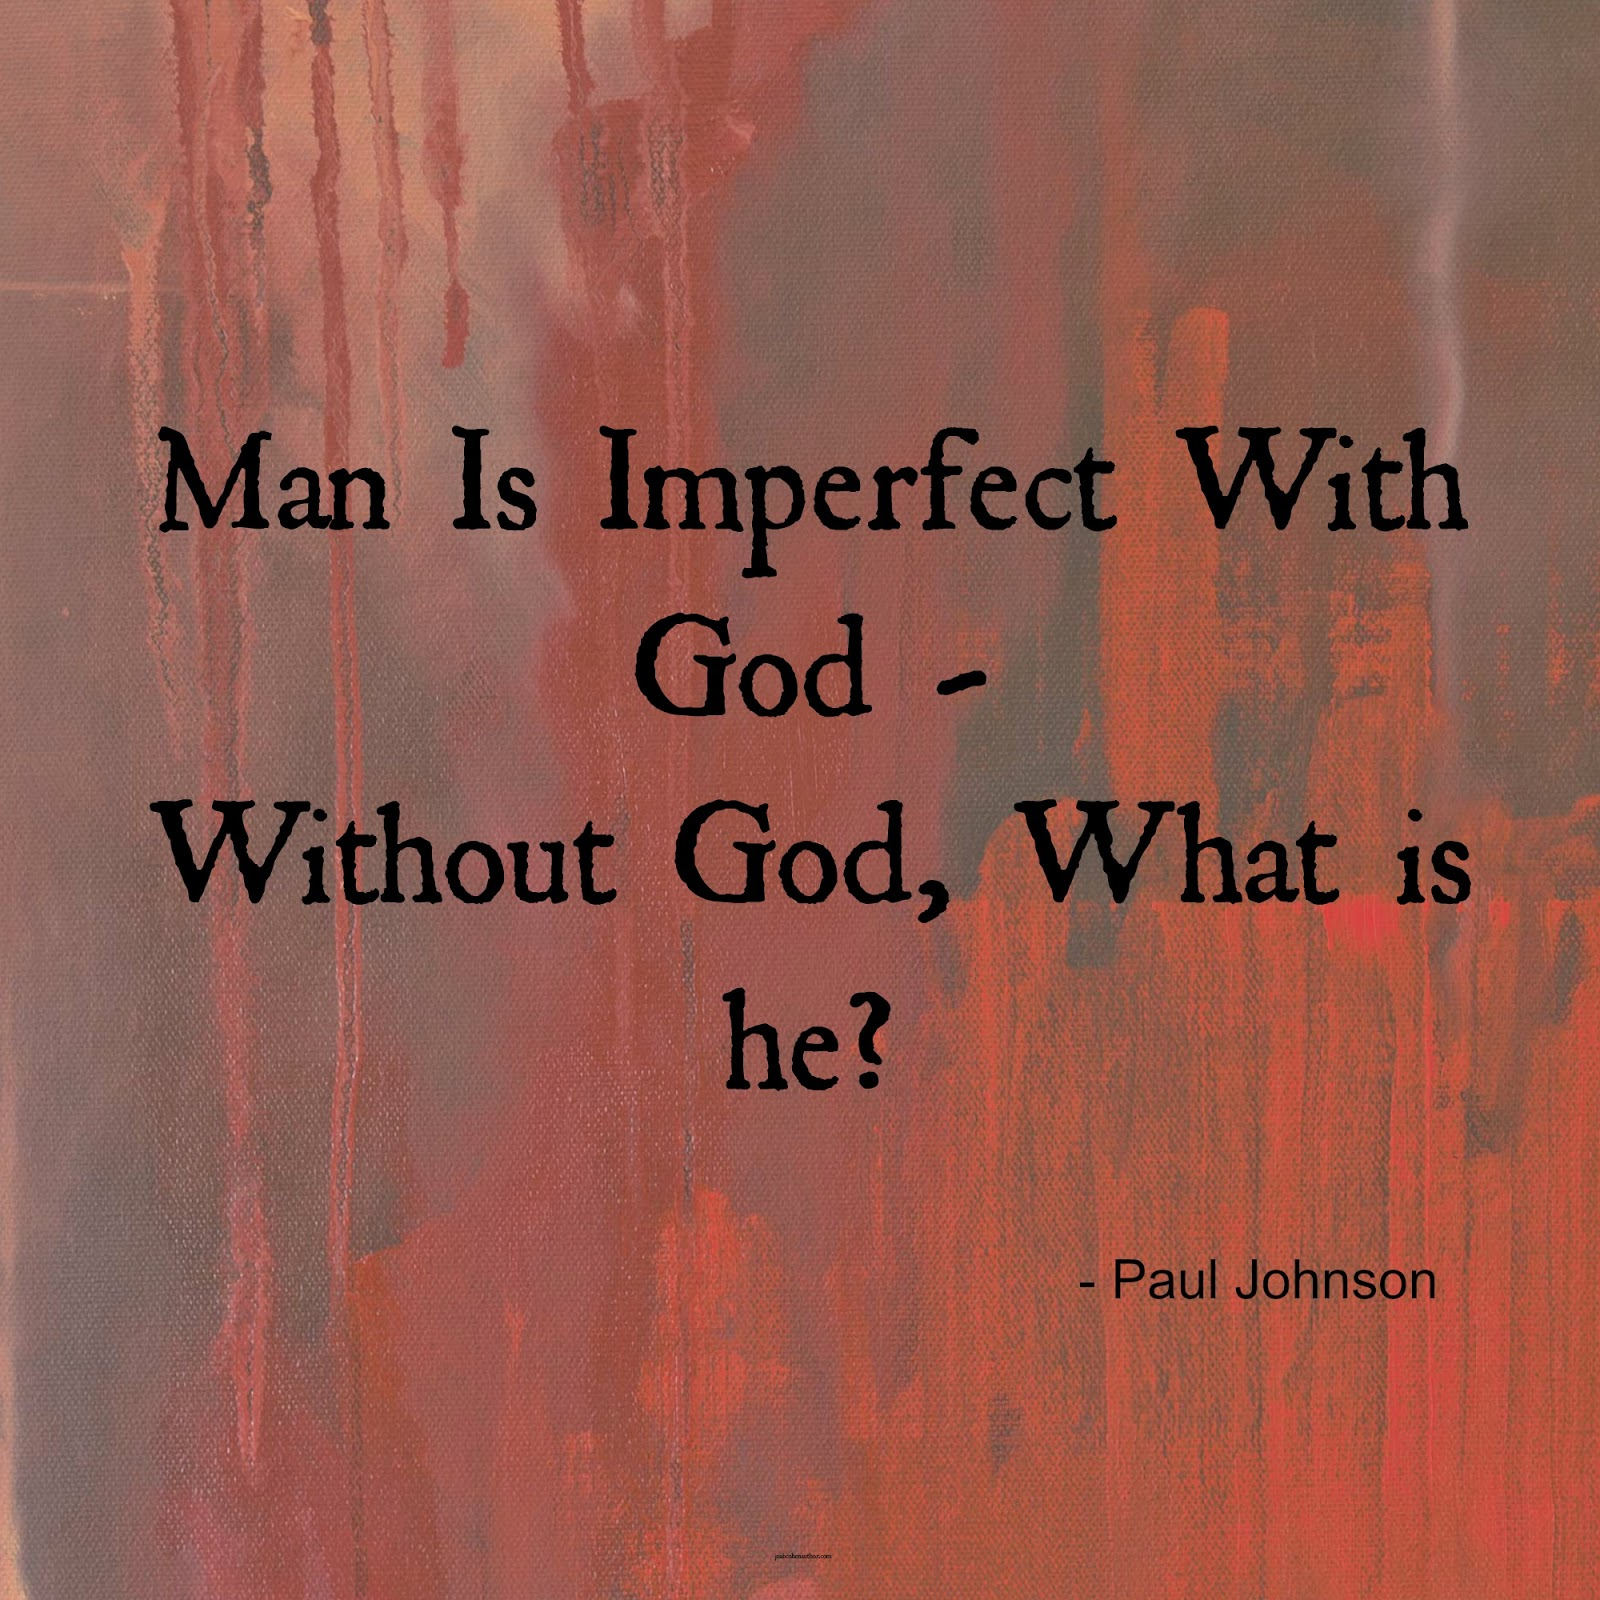 Man is imperfect with god - what is he without god